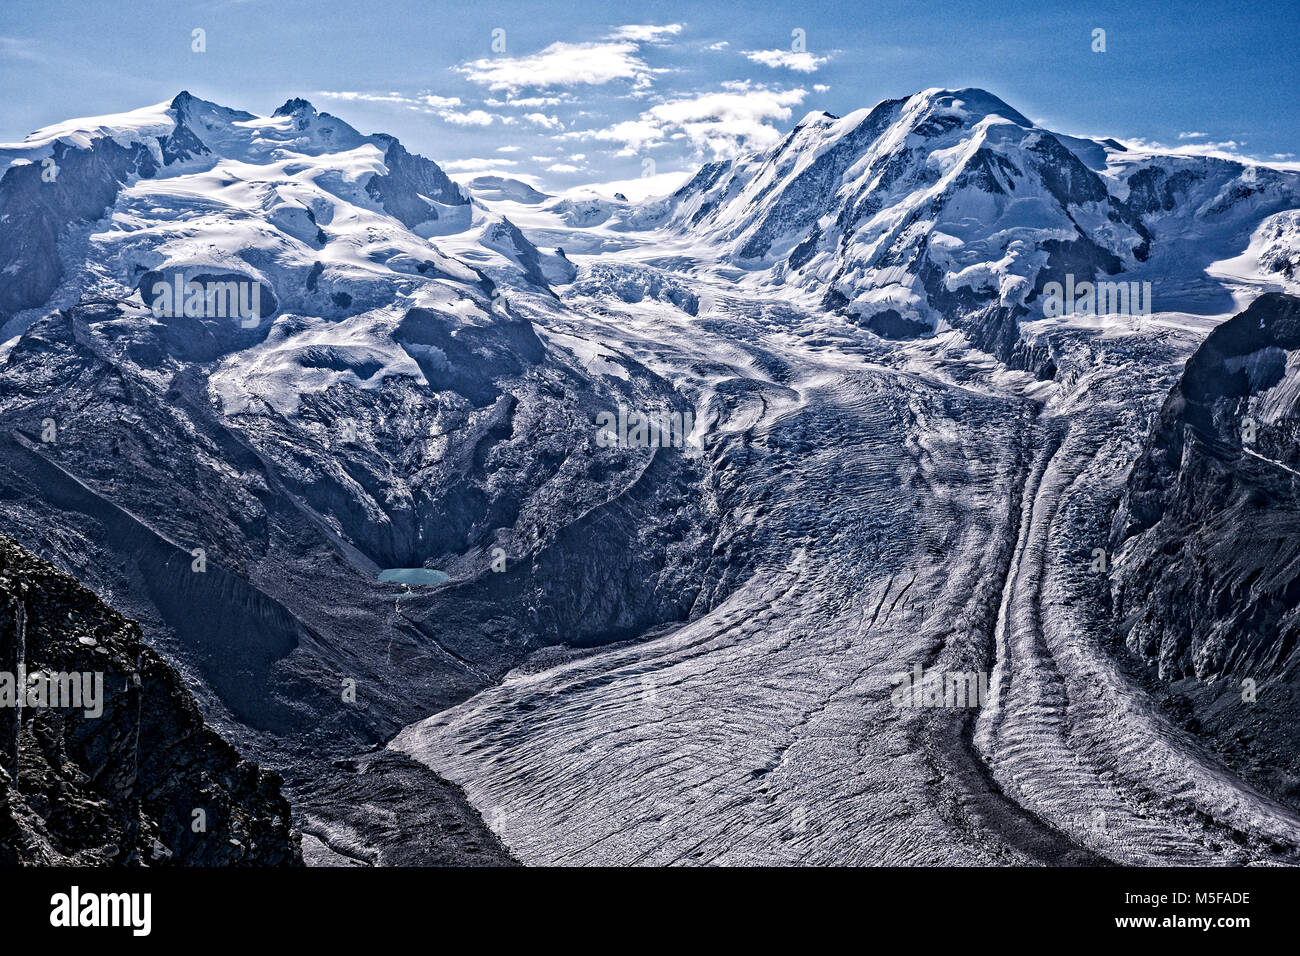 Glacier descending from the Monte Rosa summit above Zermatt, Switzerland. - Stock Image